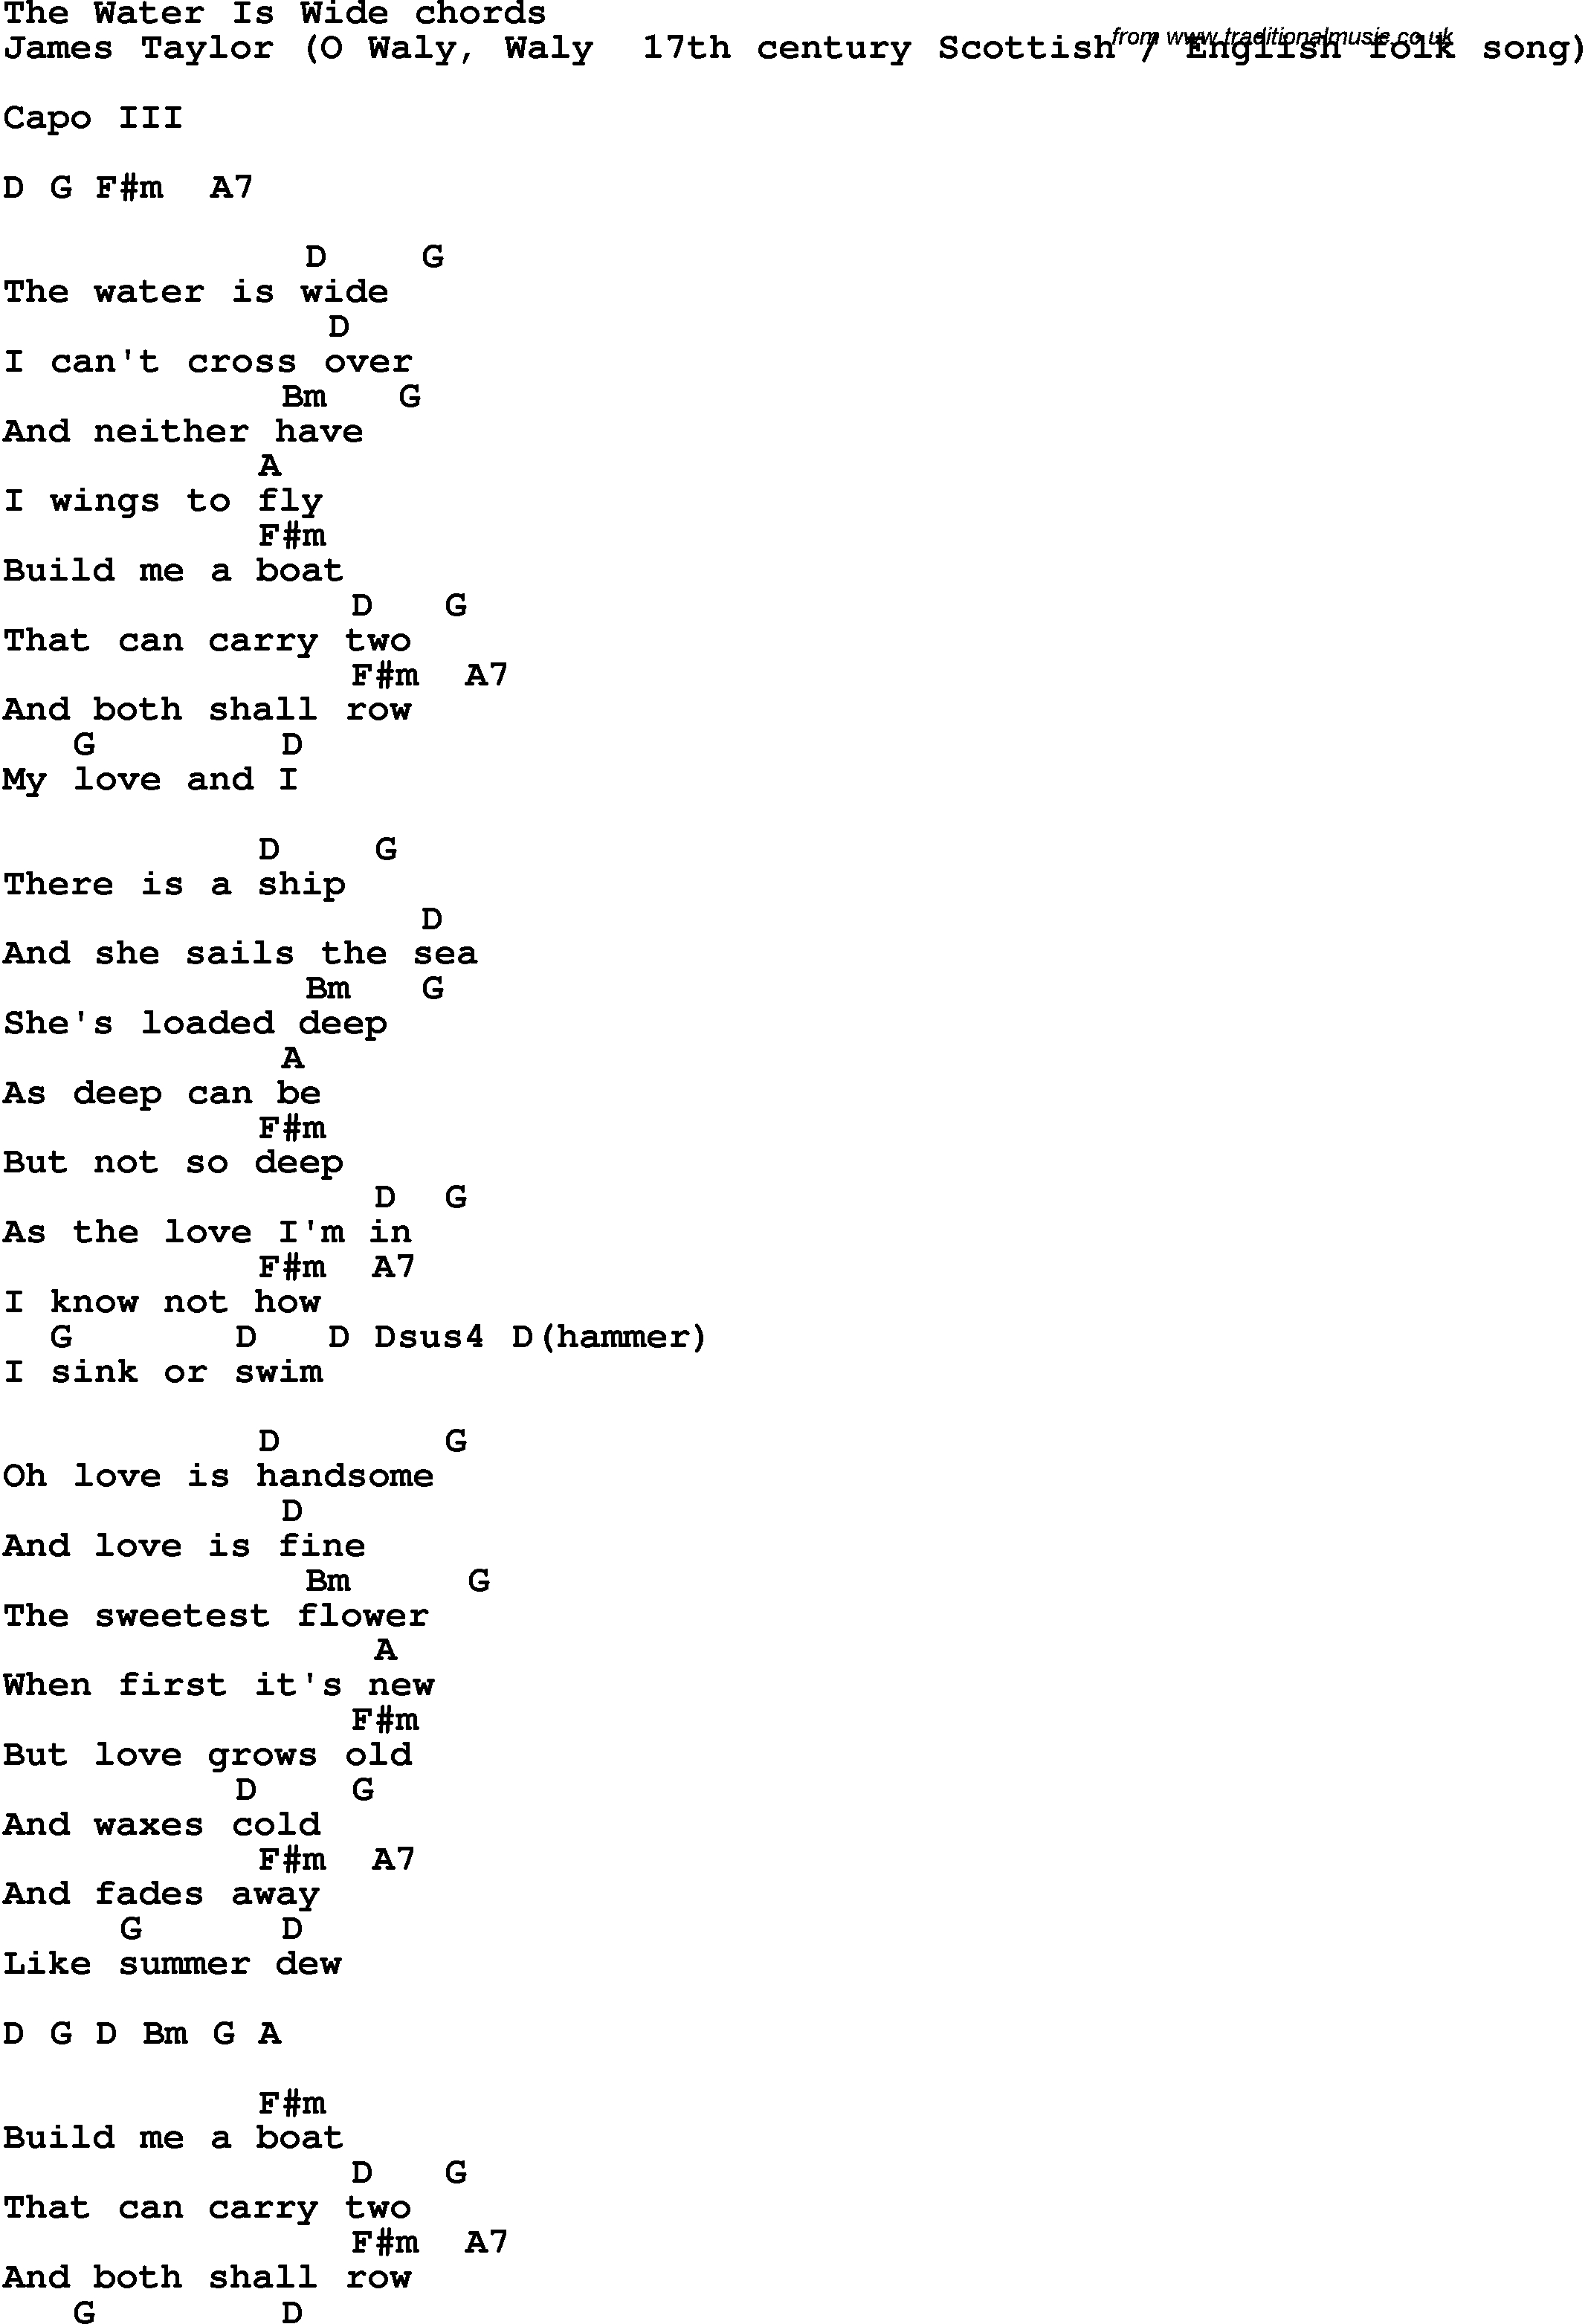 Cold Water Chords Song Lyrics With Guitar Chords For The Water Is Wide James Taylor